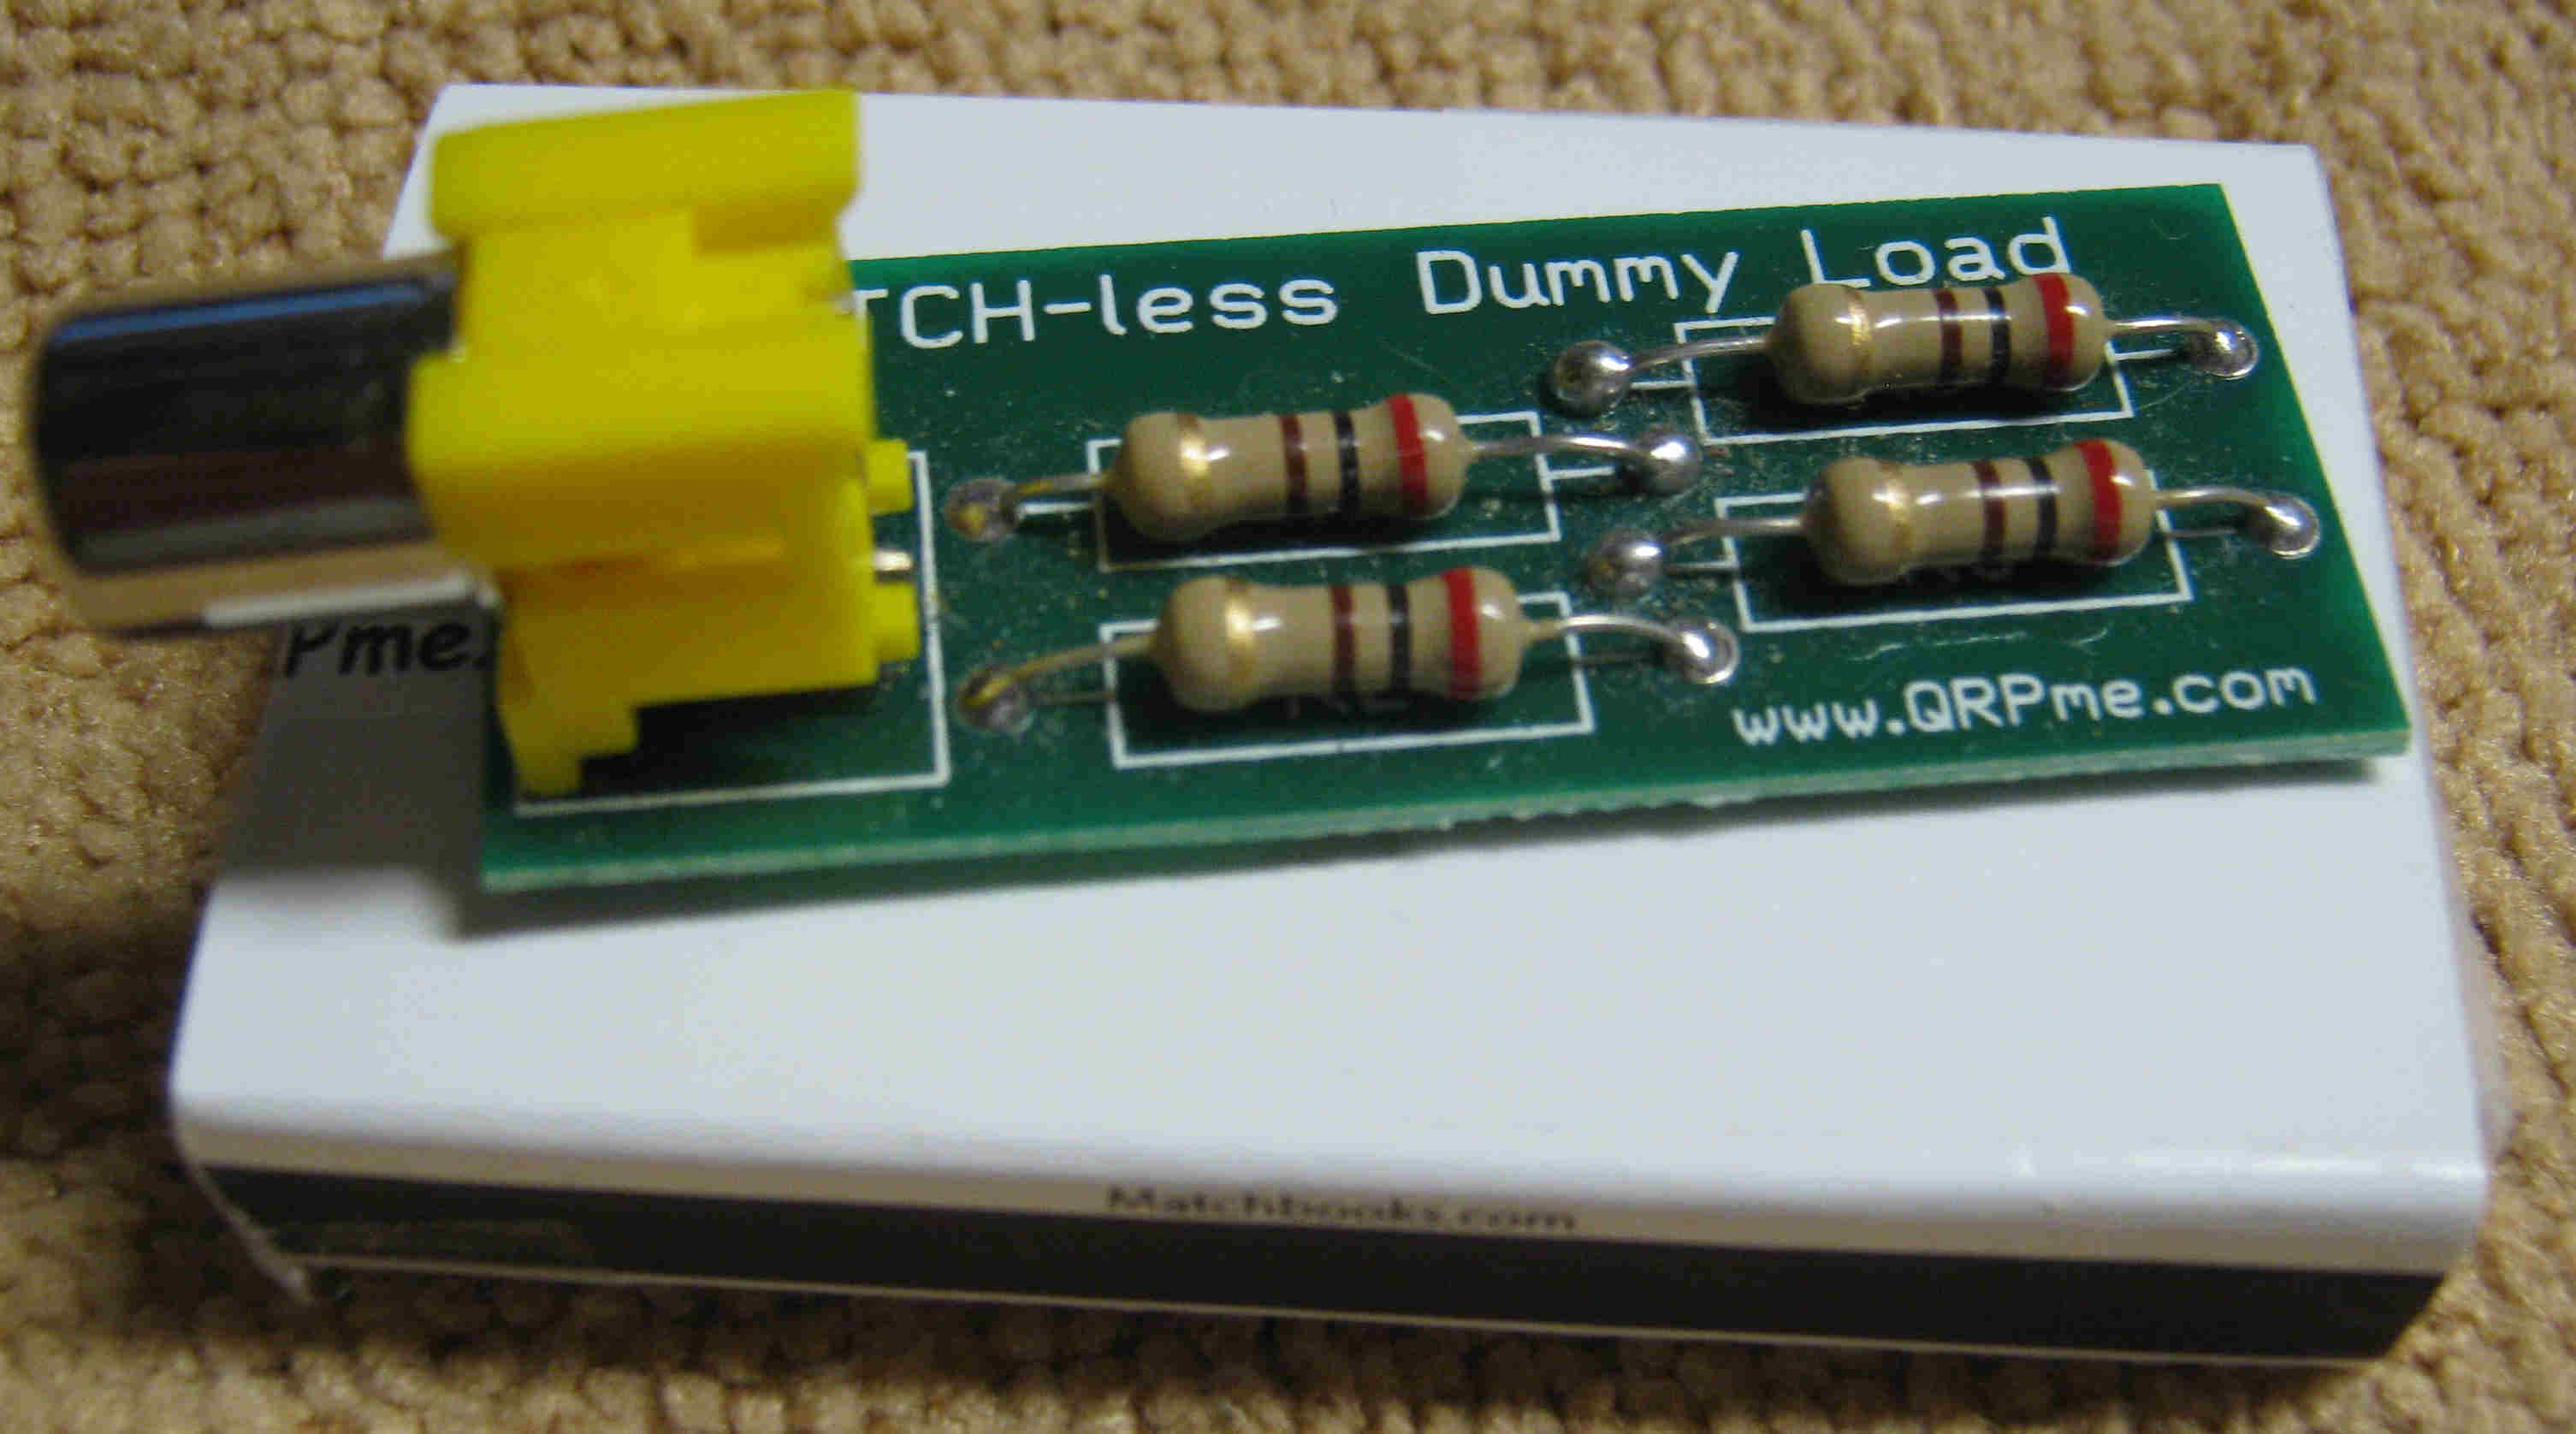 Qrpme Qrp Fun In Cans Boxes And From Scratch Electronic Circuits For Dummies Picture Of Match Less Dummy Load